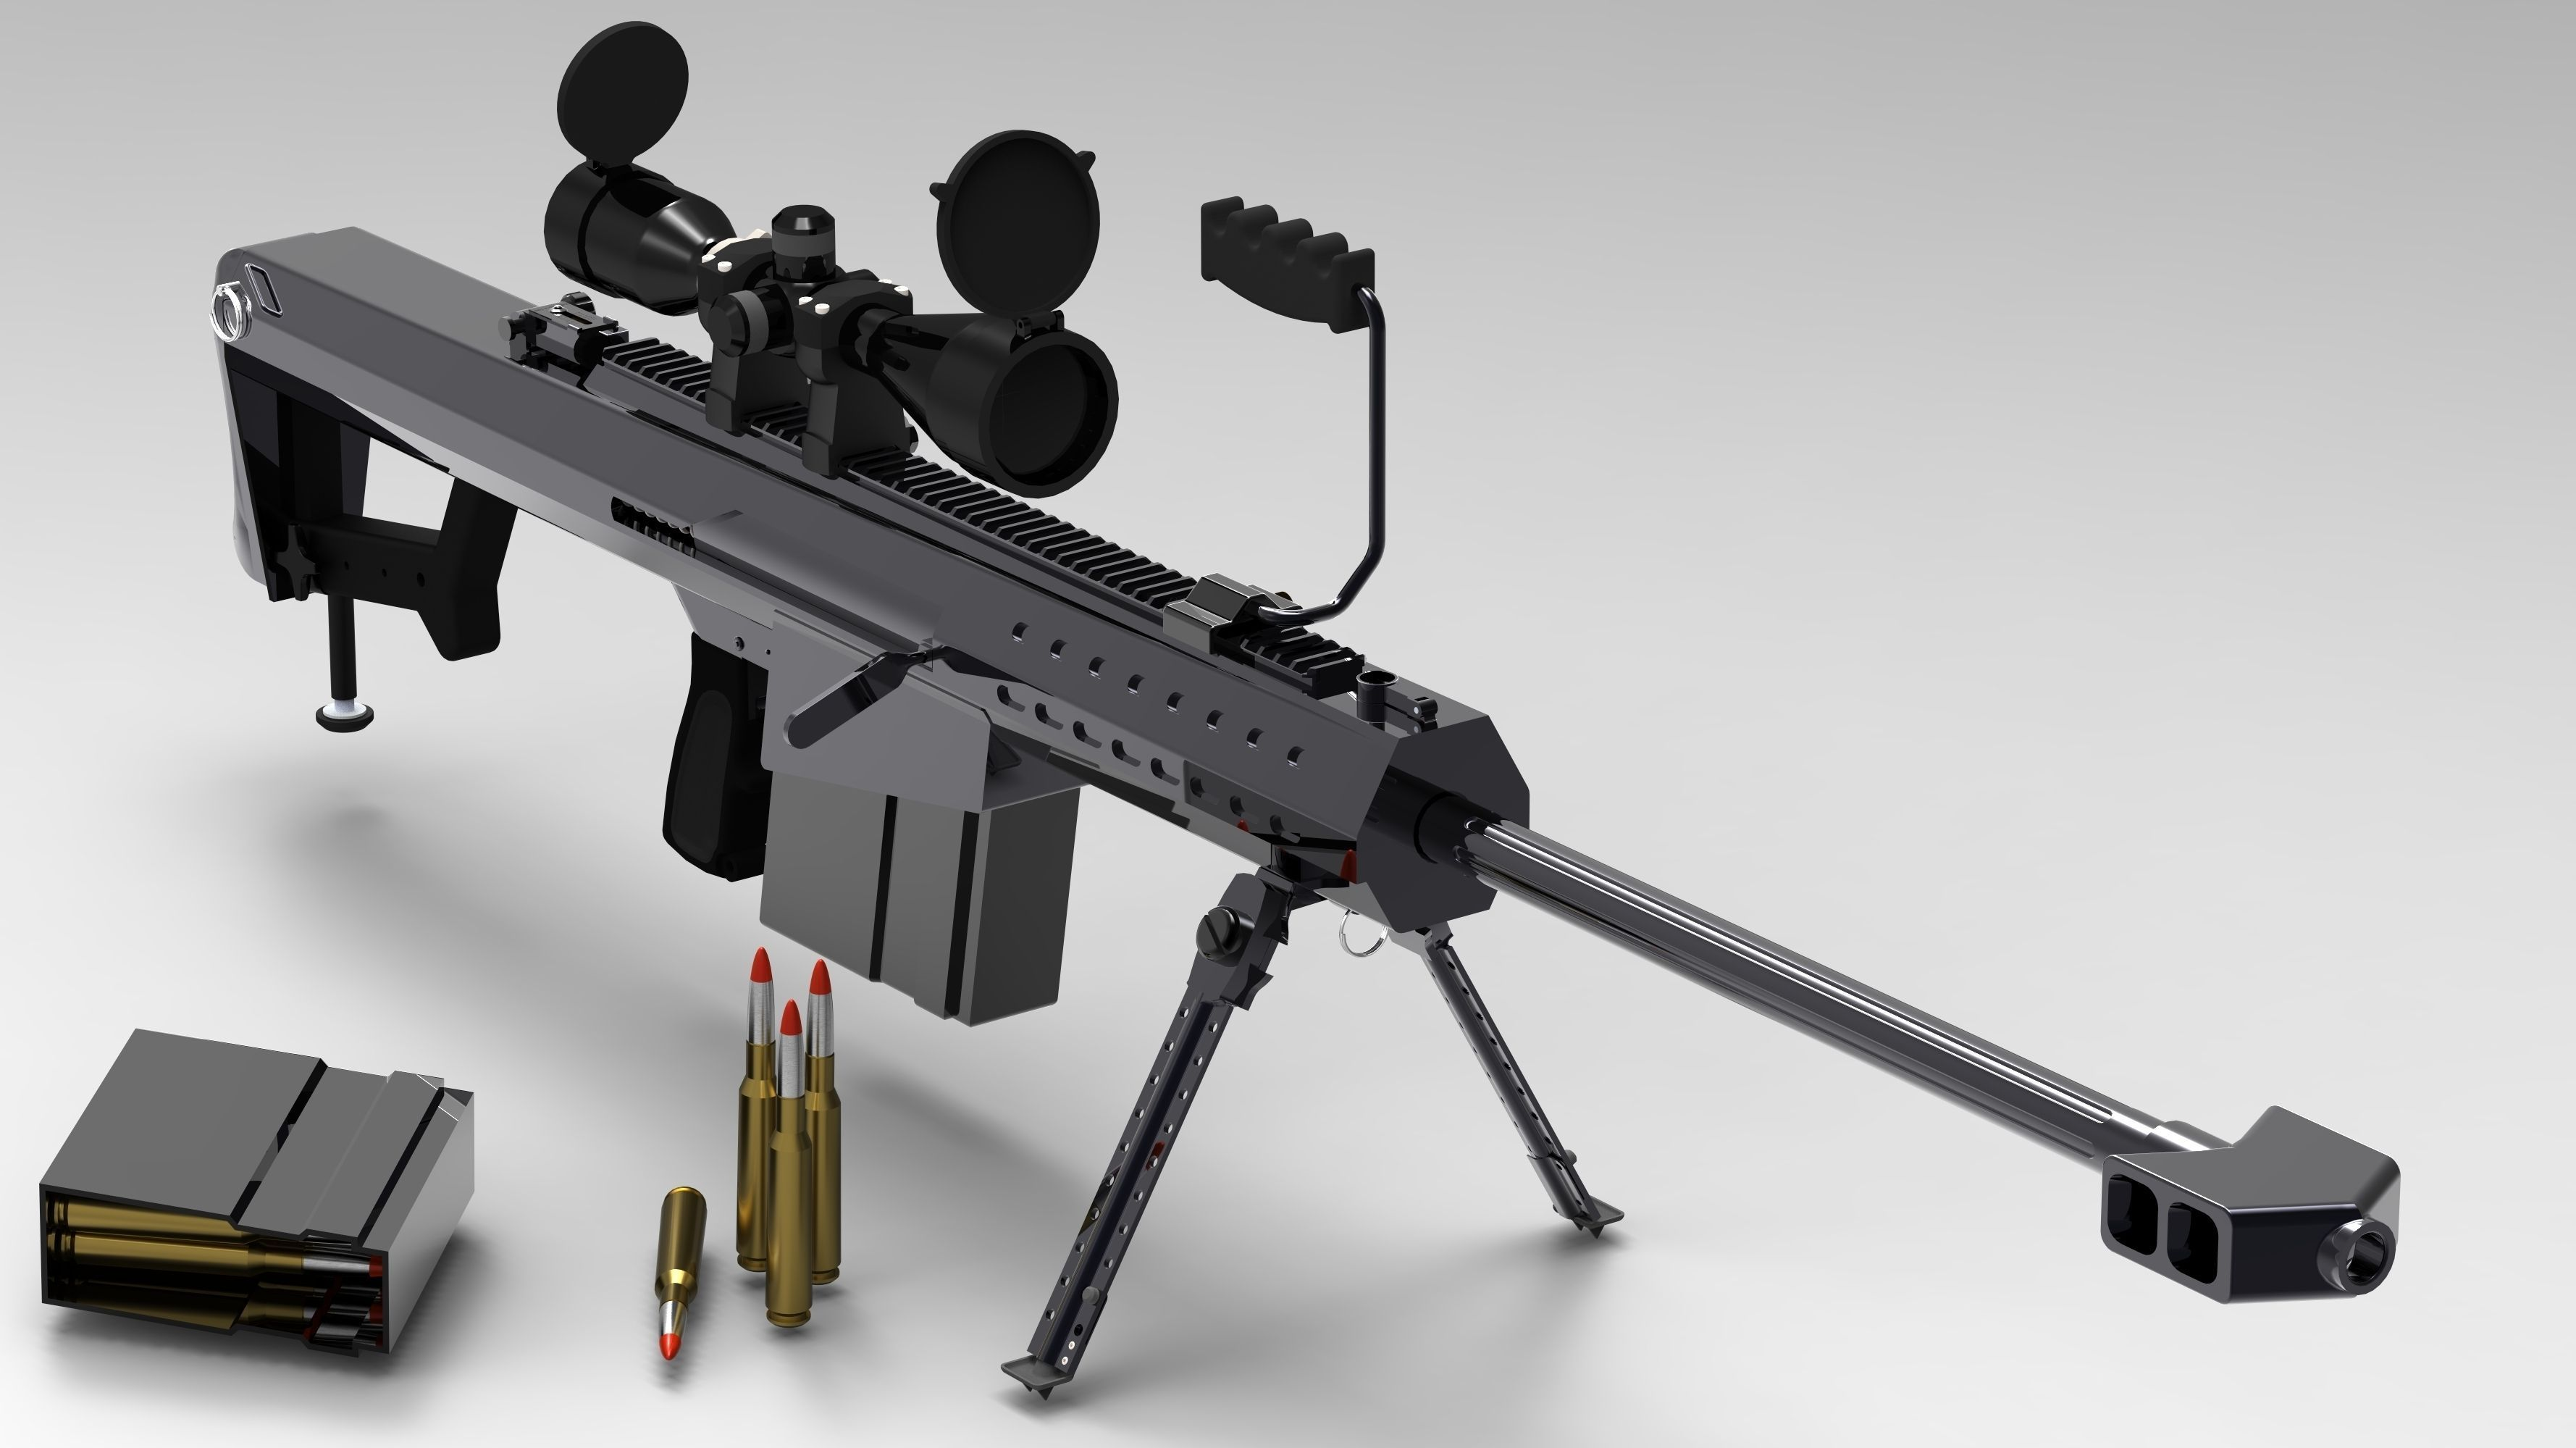 barrett-m107-50-caliber-sniper-rifle-3d-